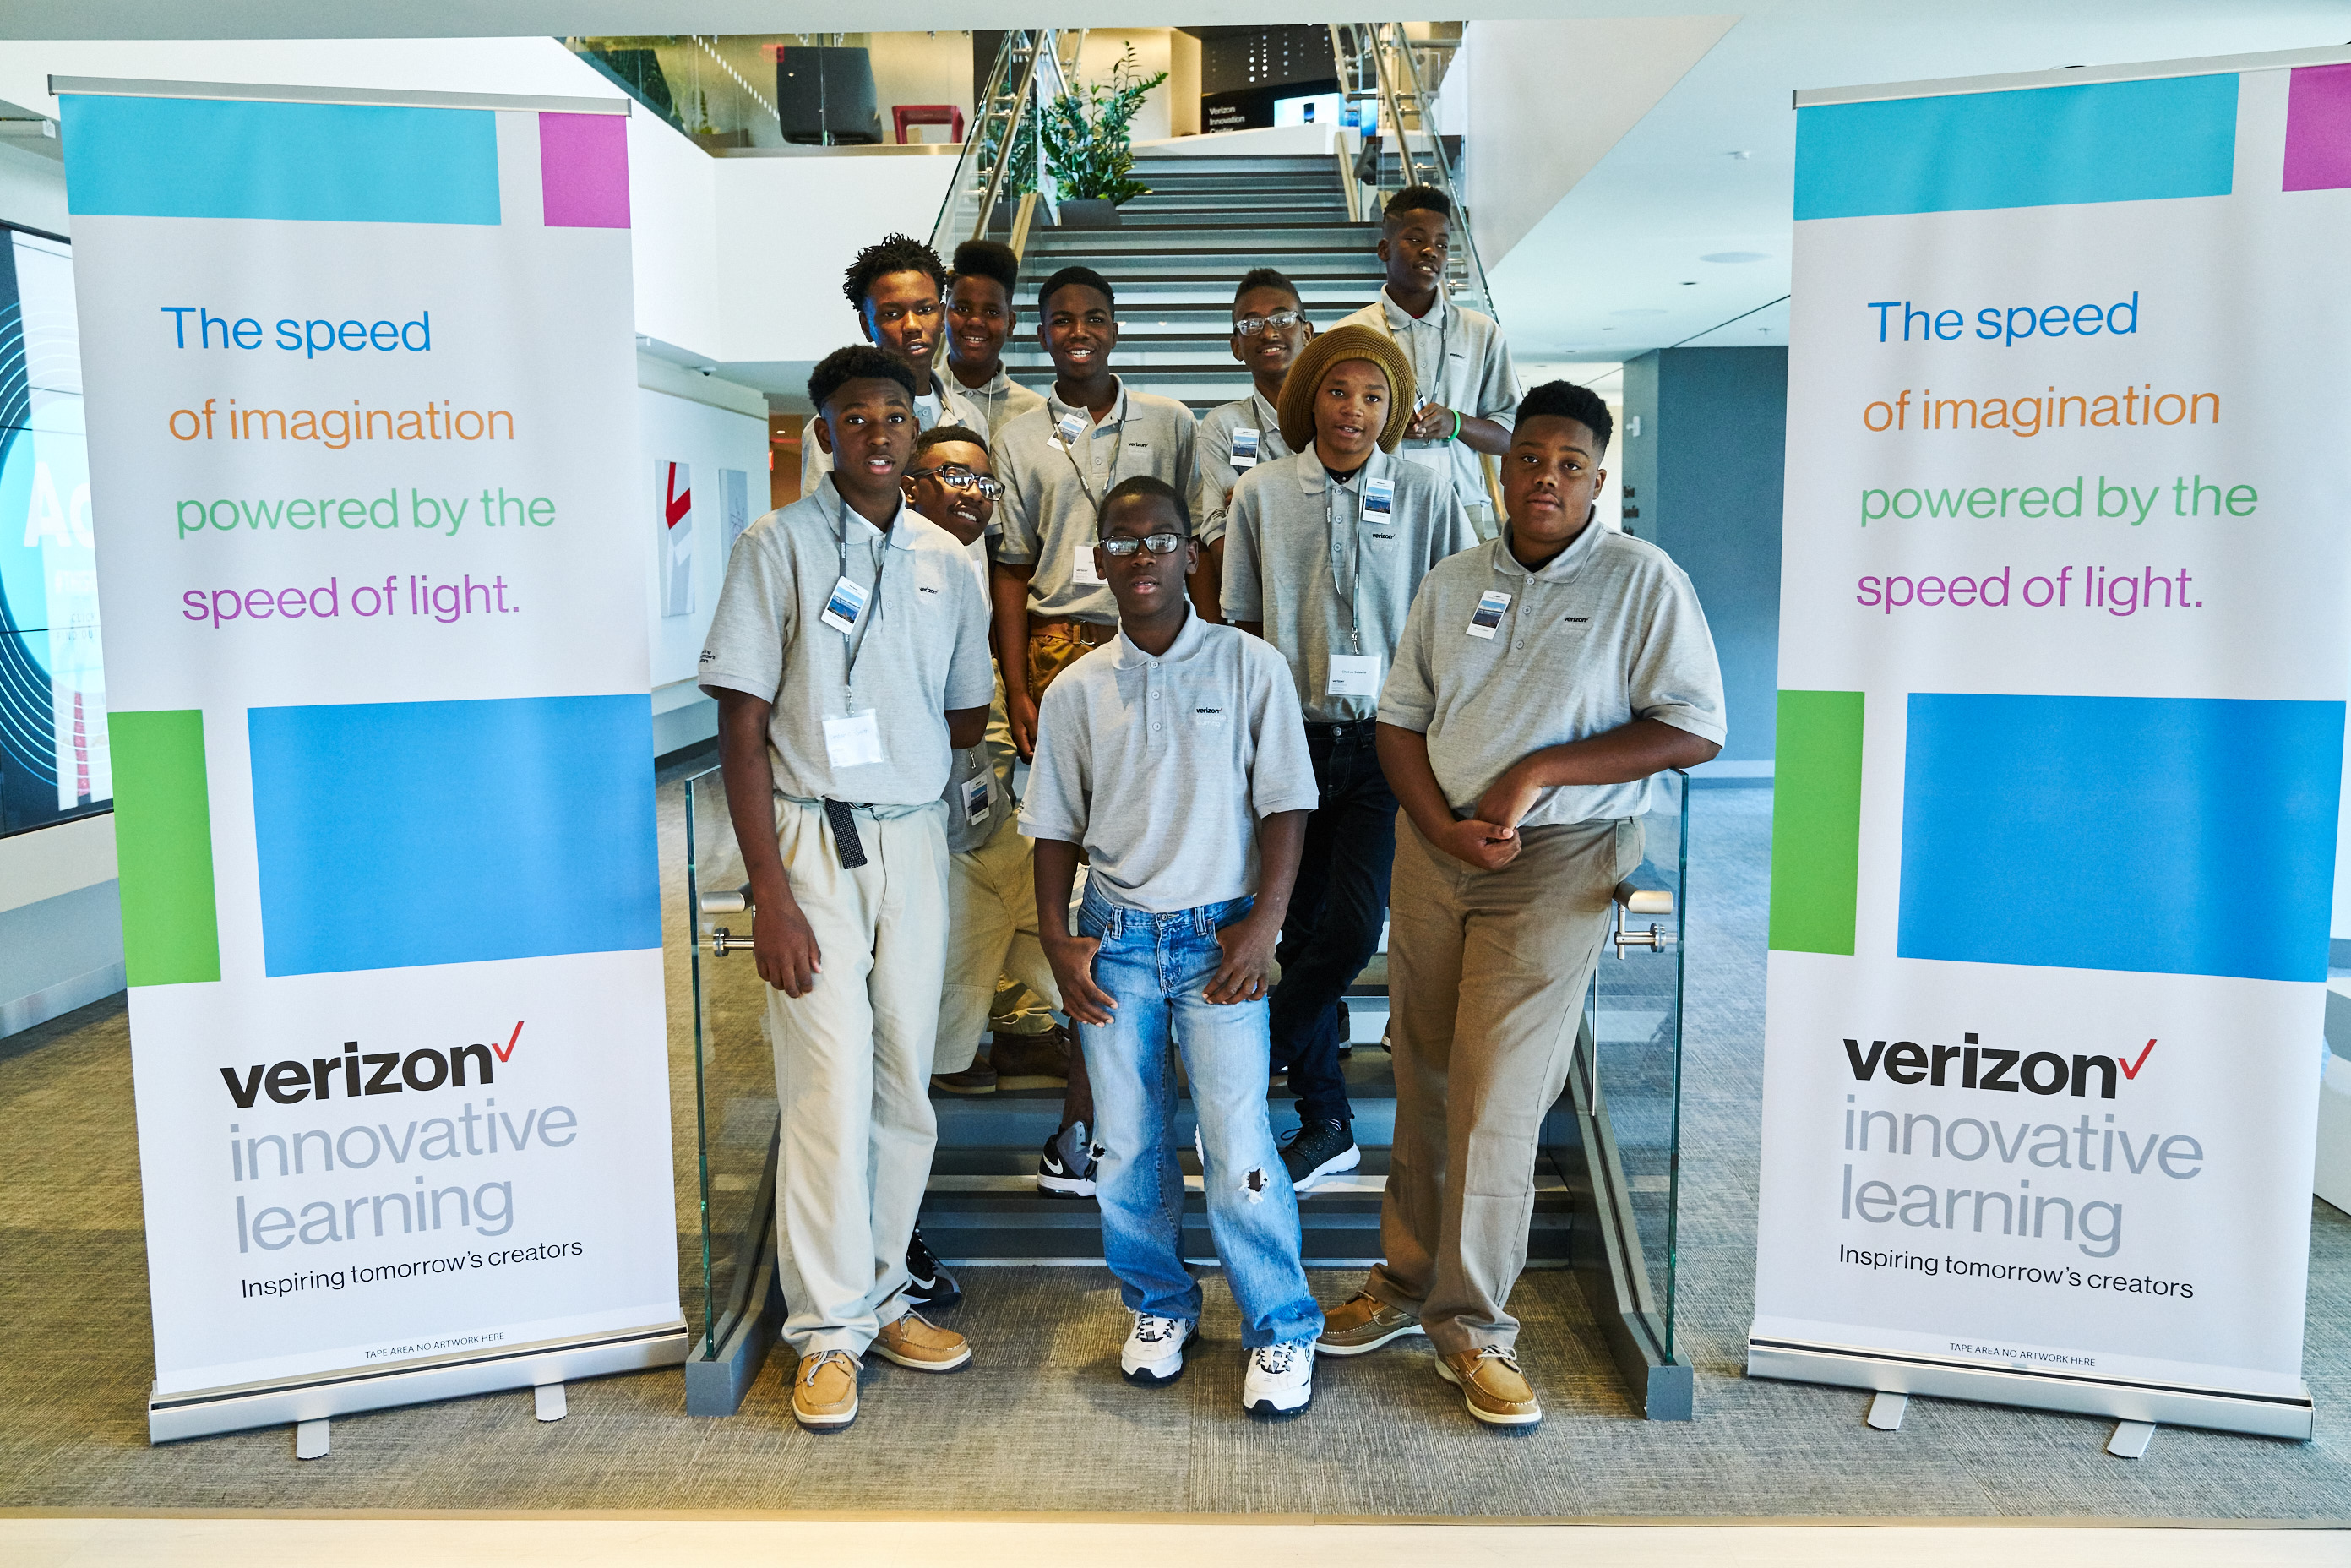 MLEE-VerizonInnovation-Students-Jackson